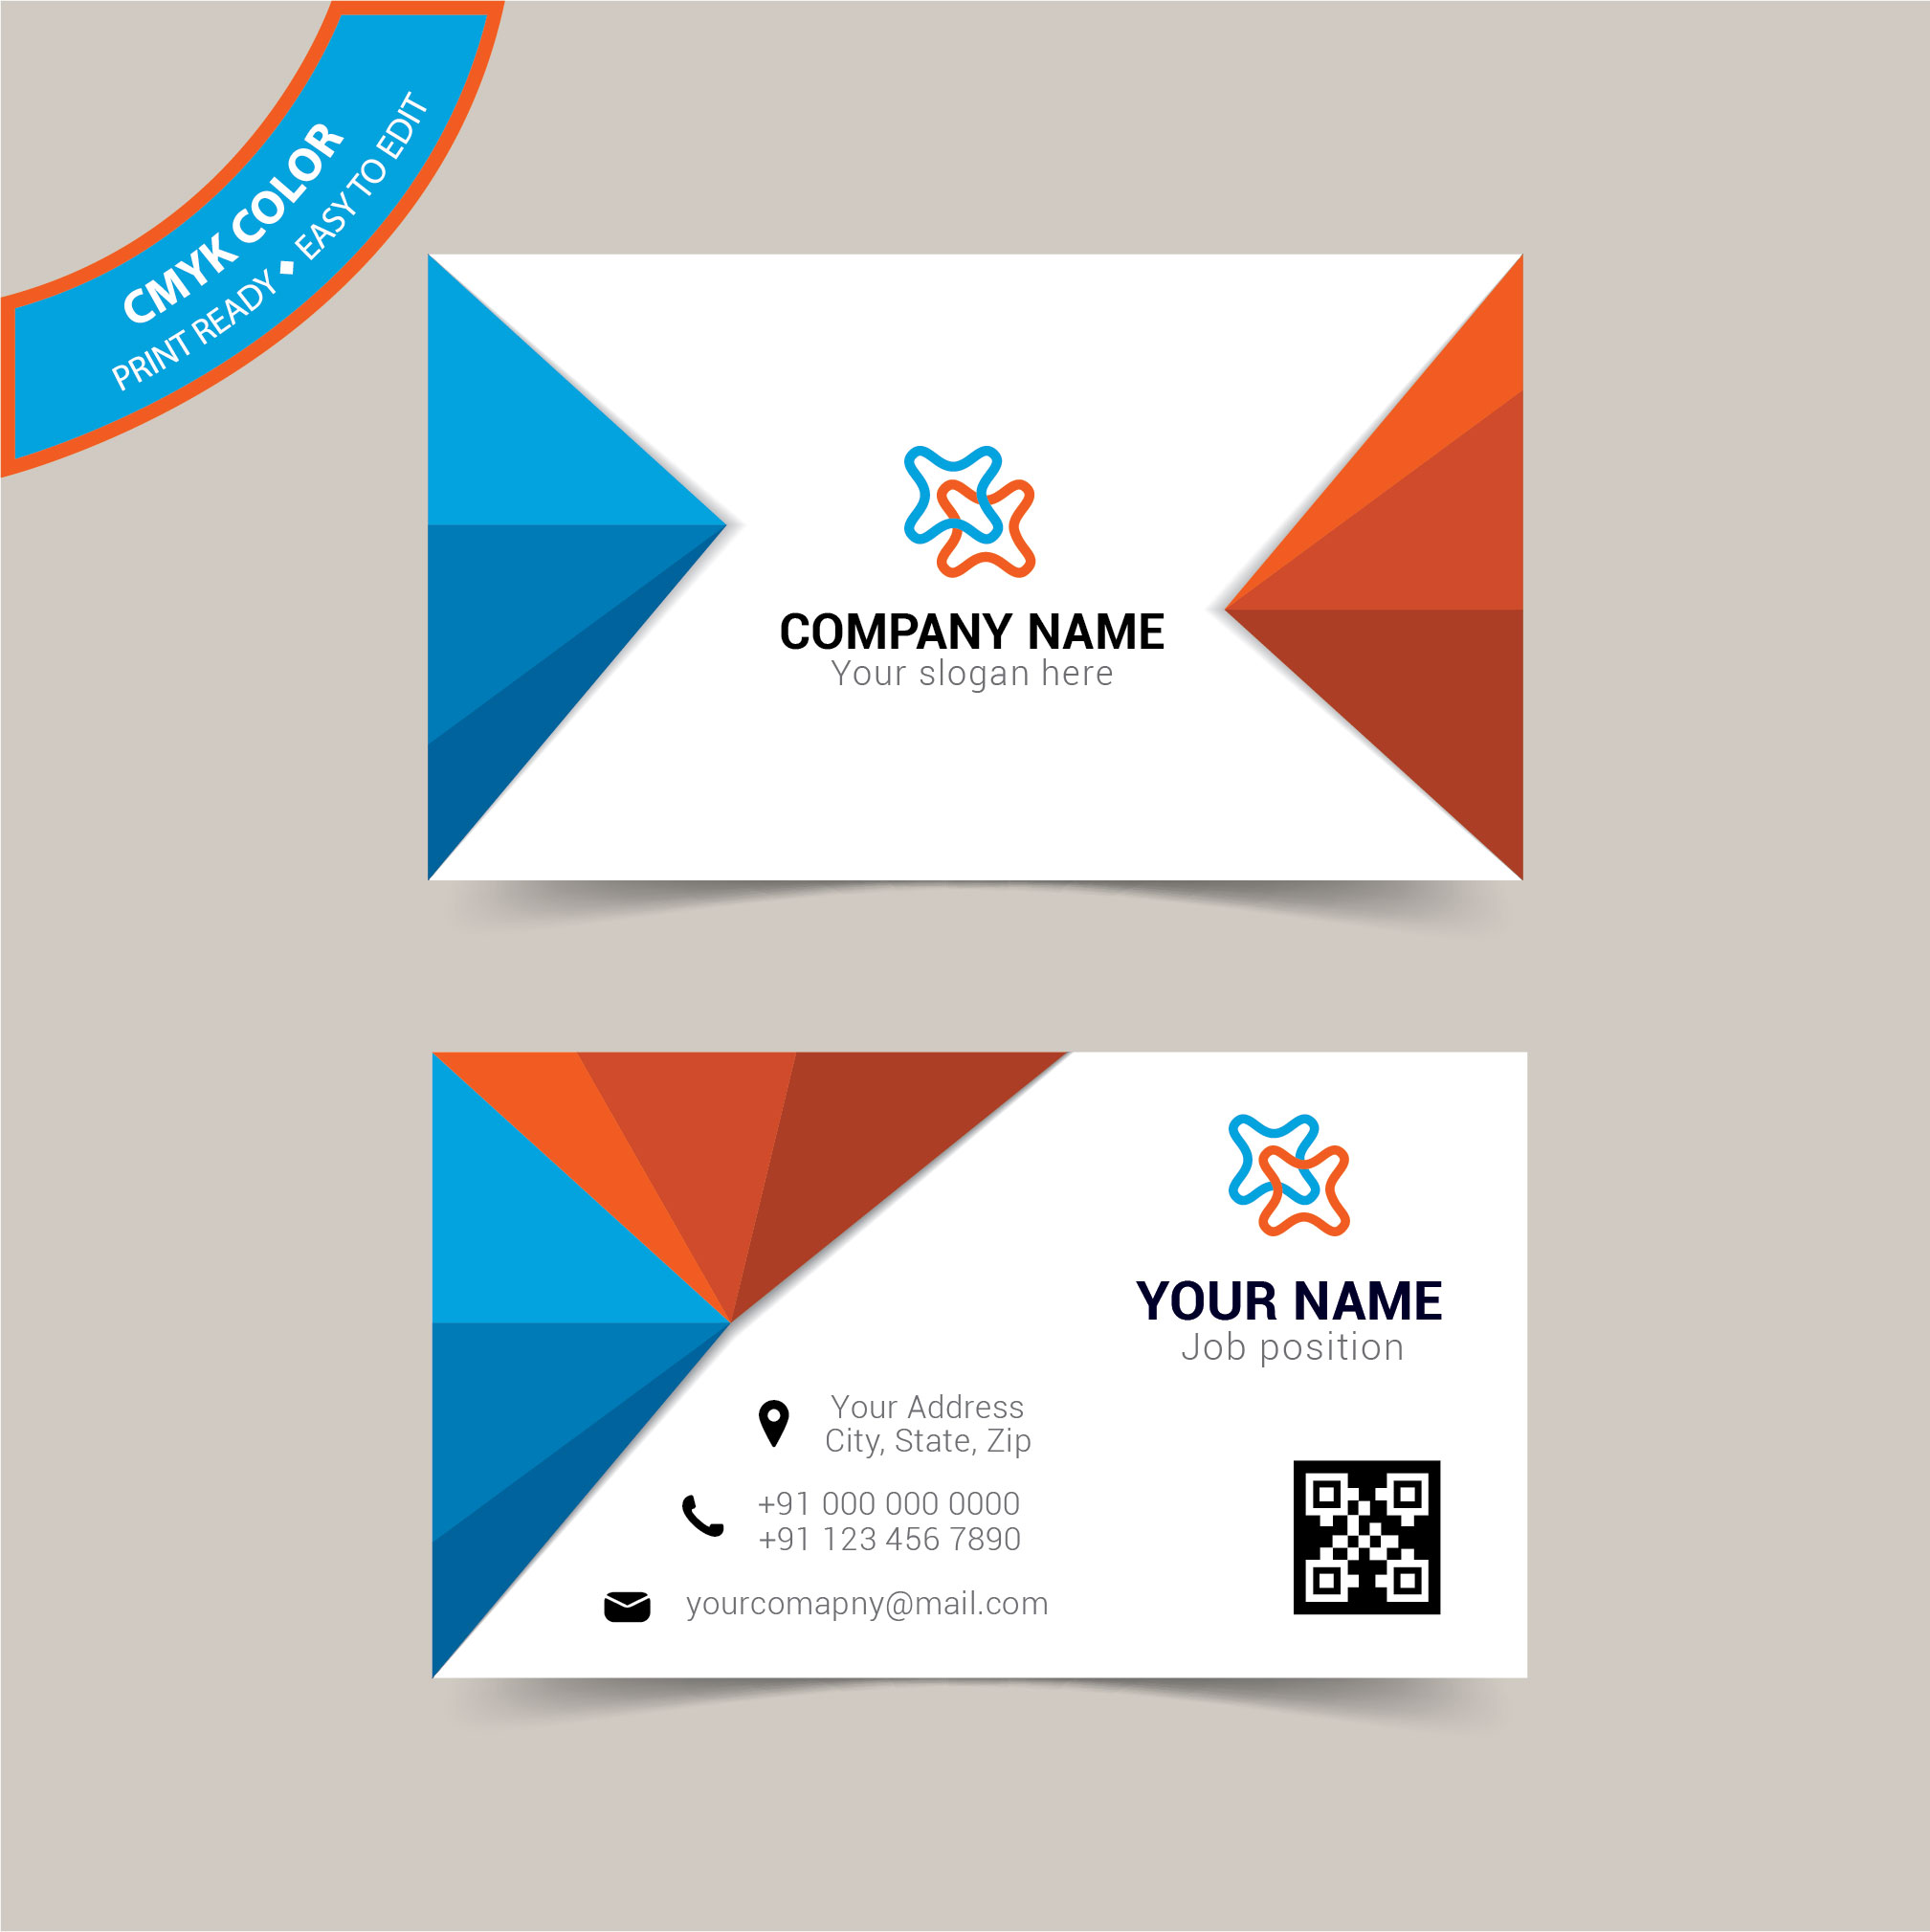 Double sided creative business card template free download wisxi business card business cards business card design business card template design templates reheart Choice Image